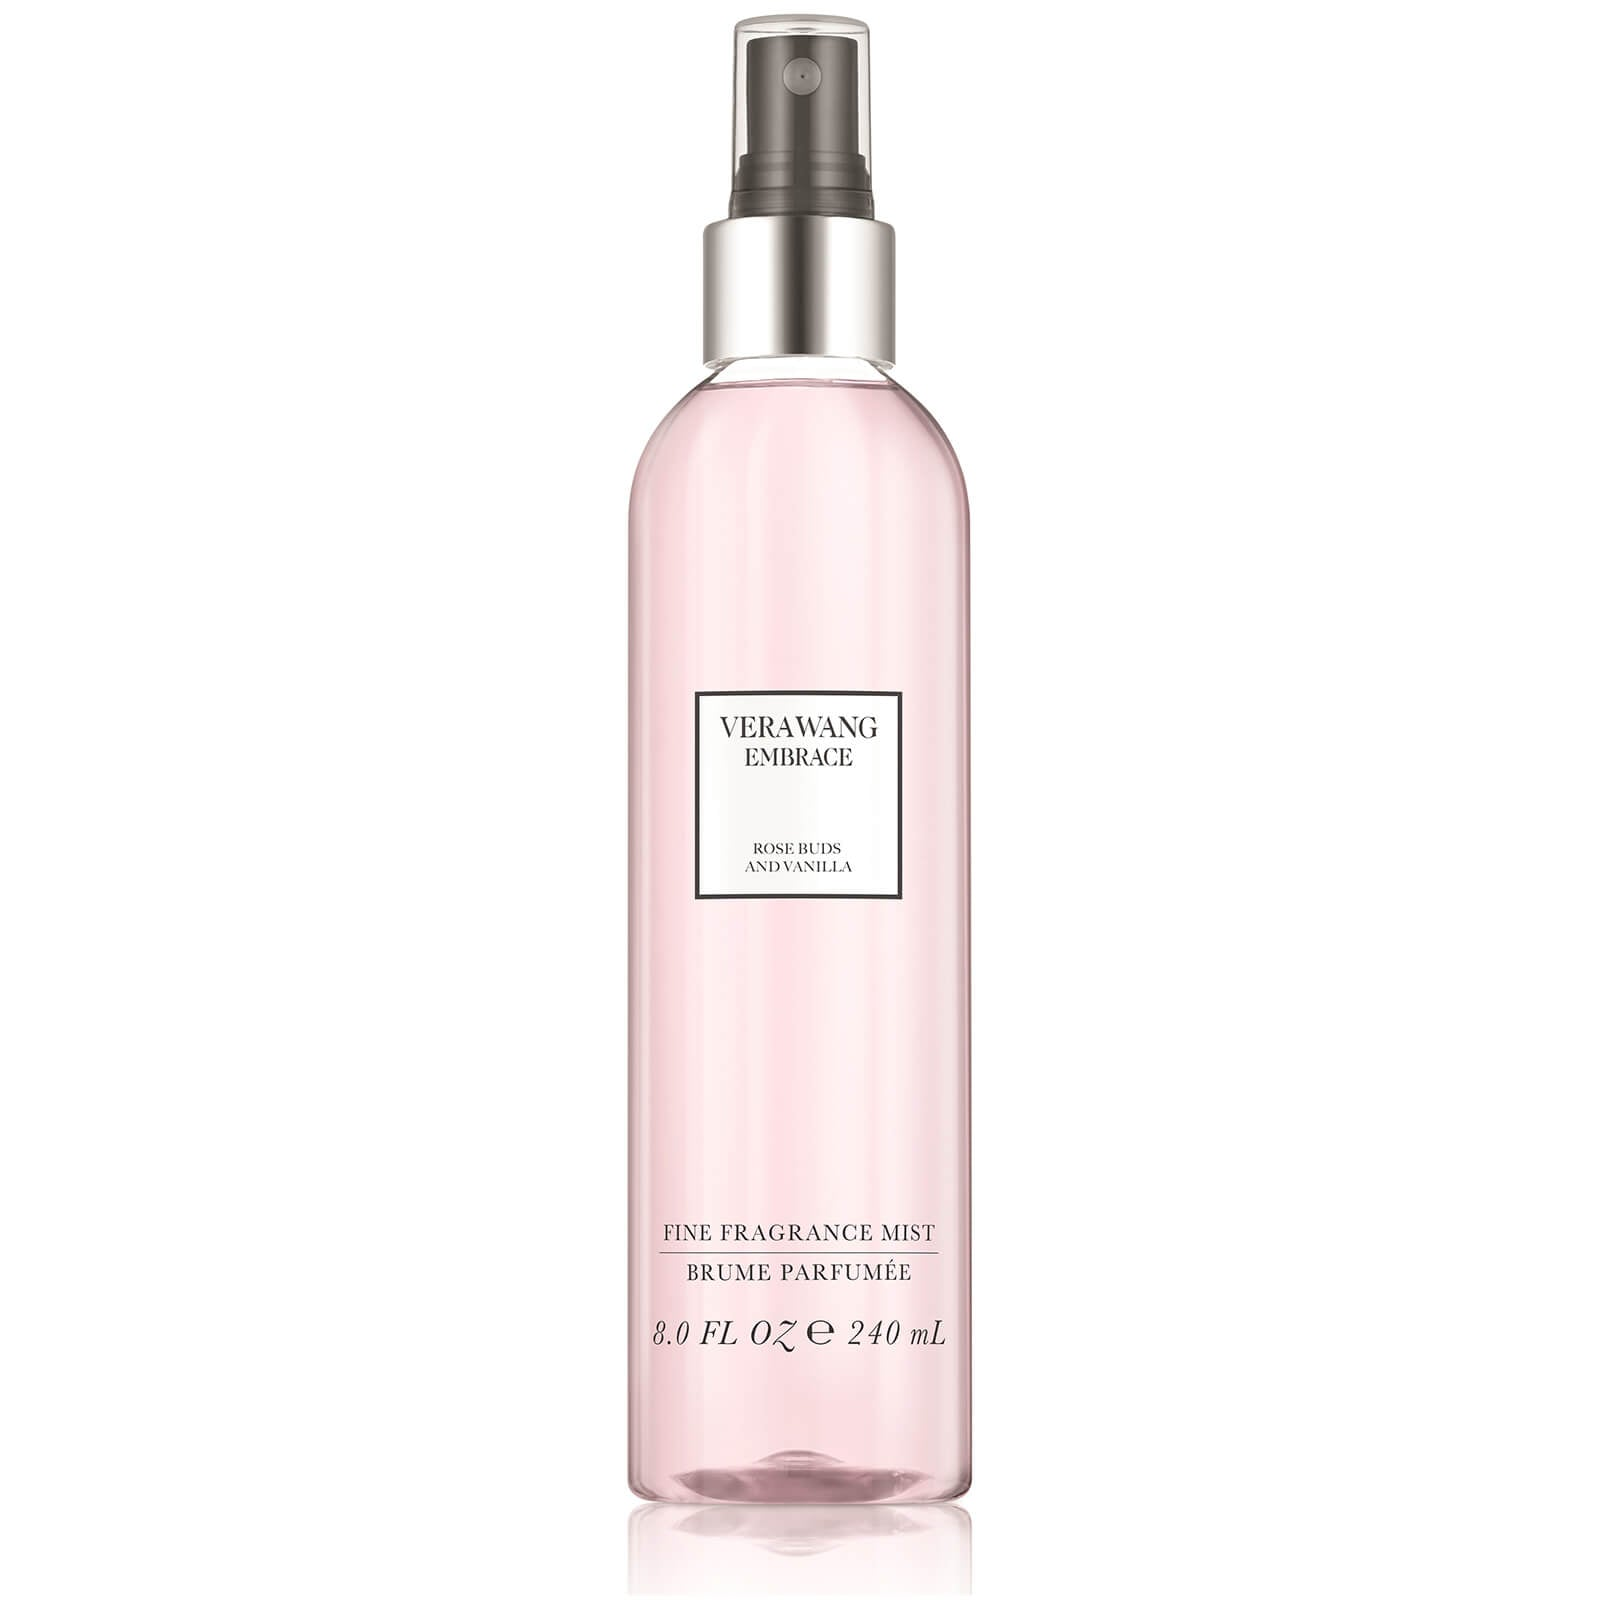 Vera Wang Embrace Rose Buds and Vanilla 240ml